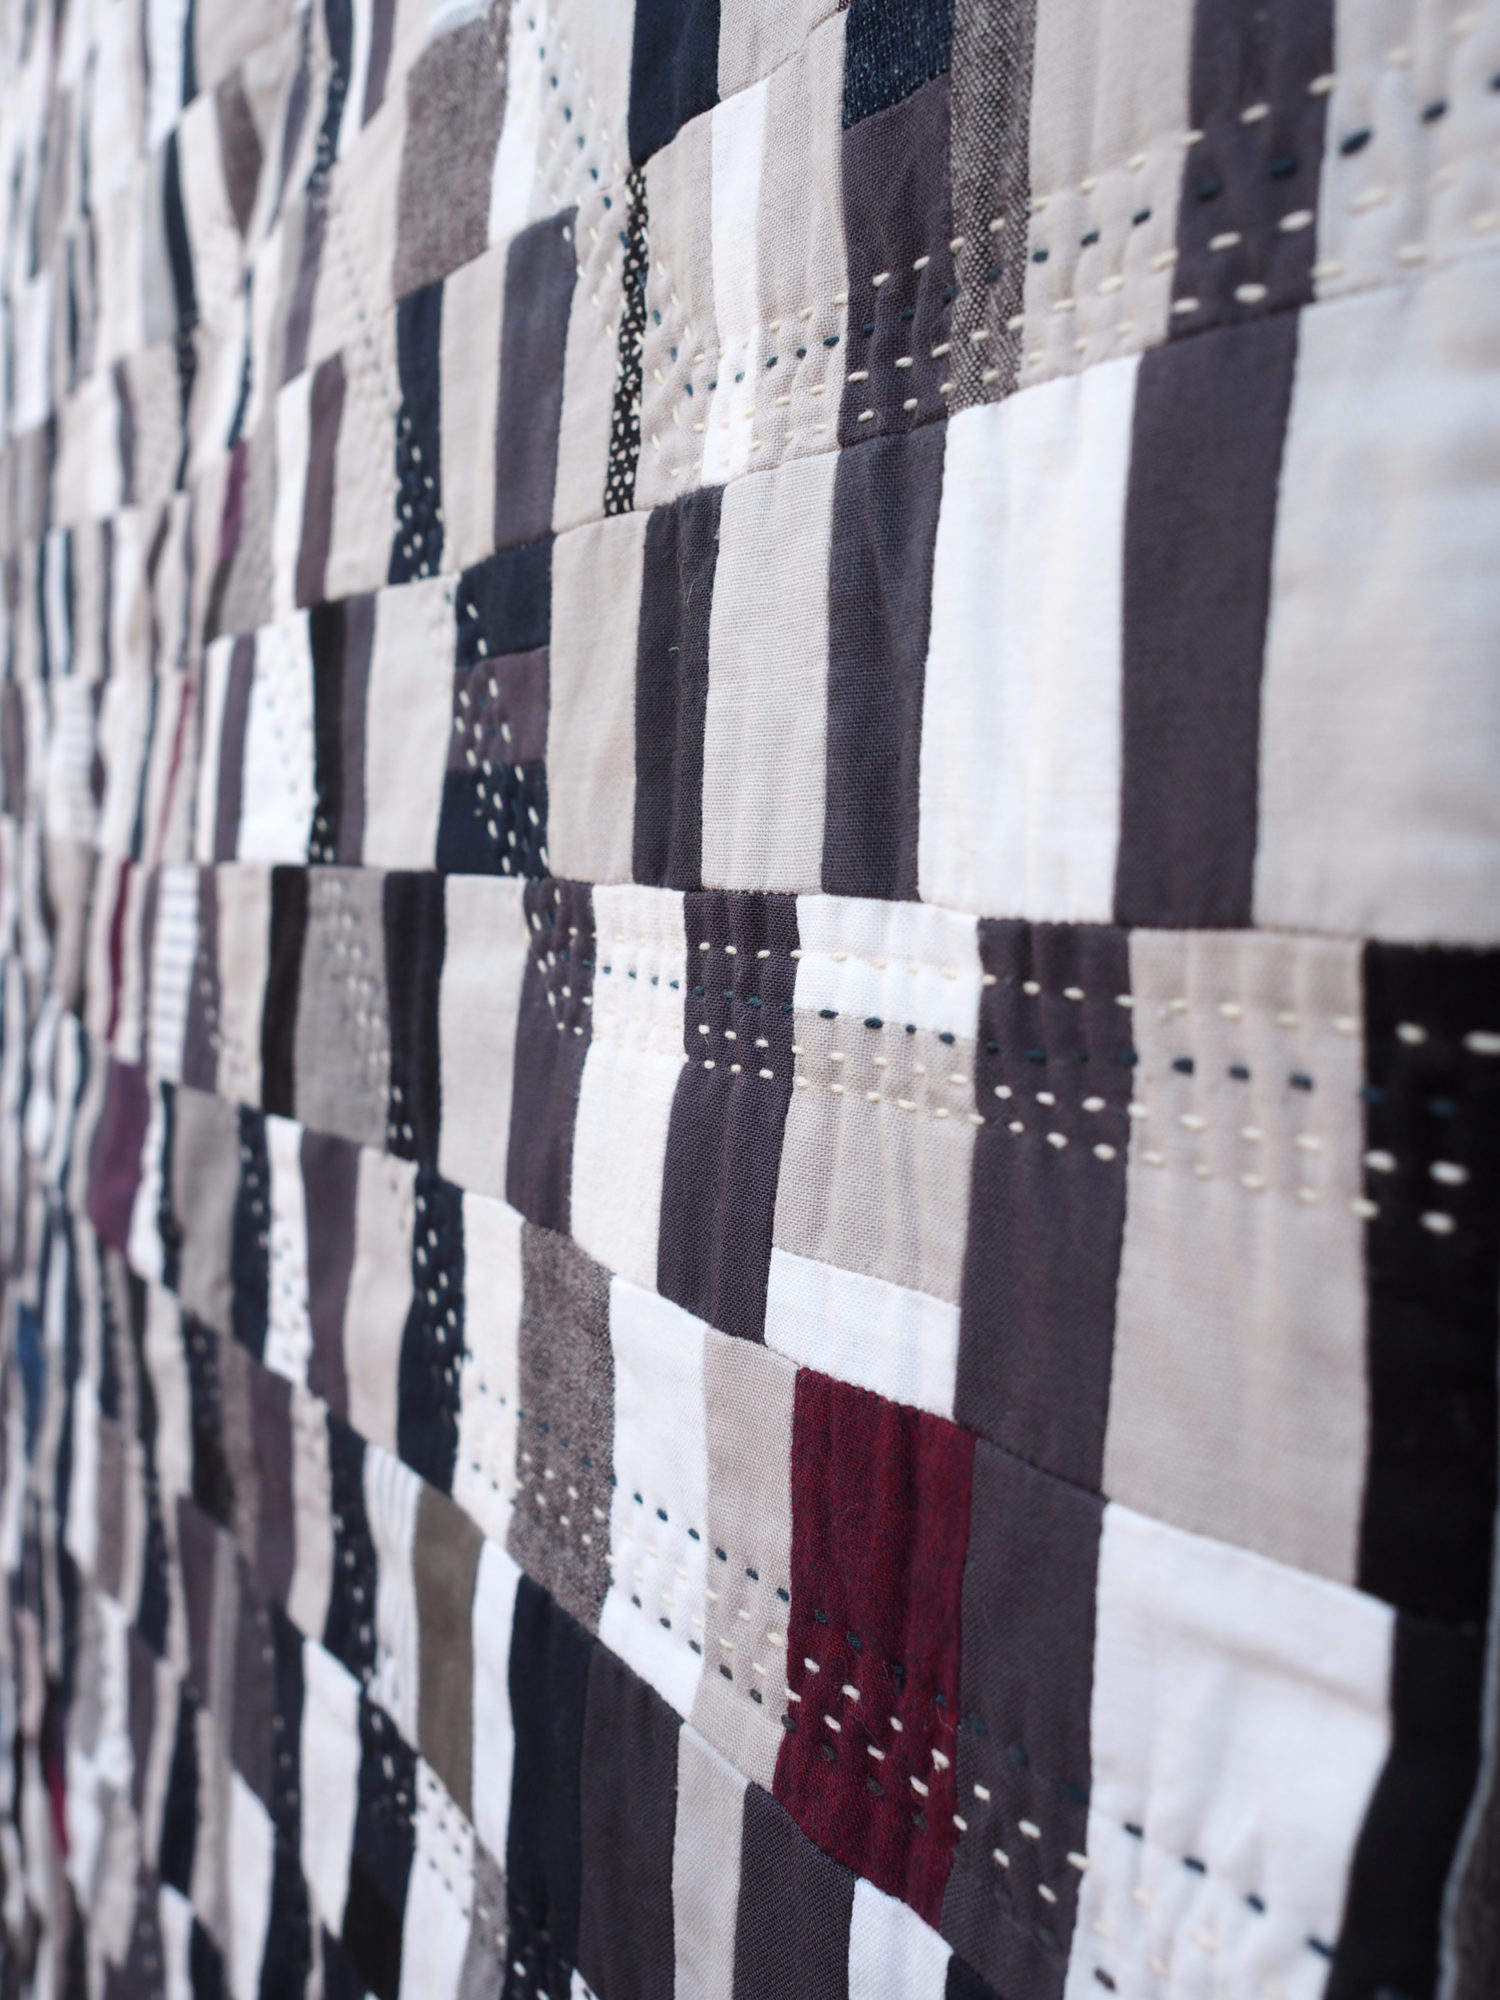 Quilt no. 020 by Shelby Marie Skumanich: Stitching Details